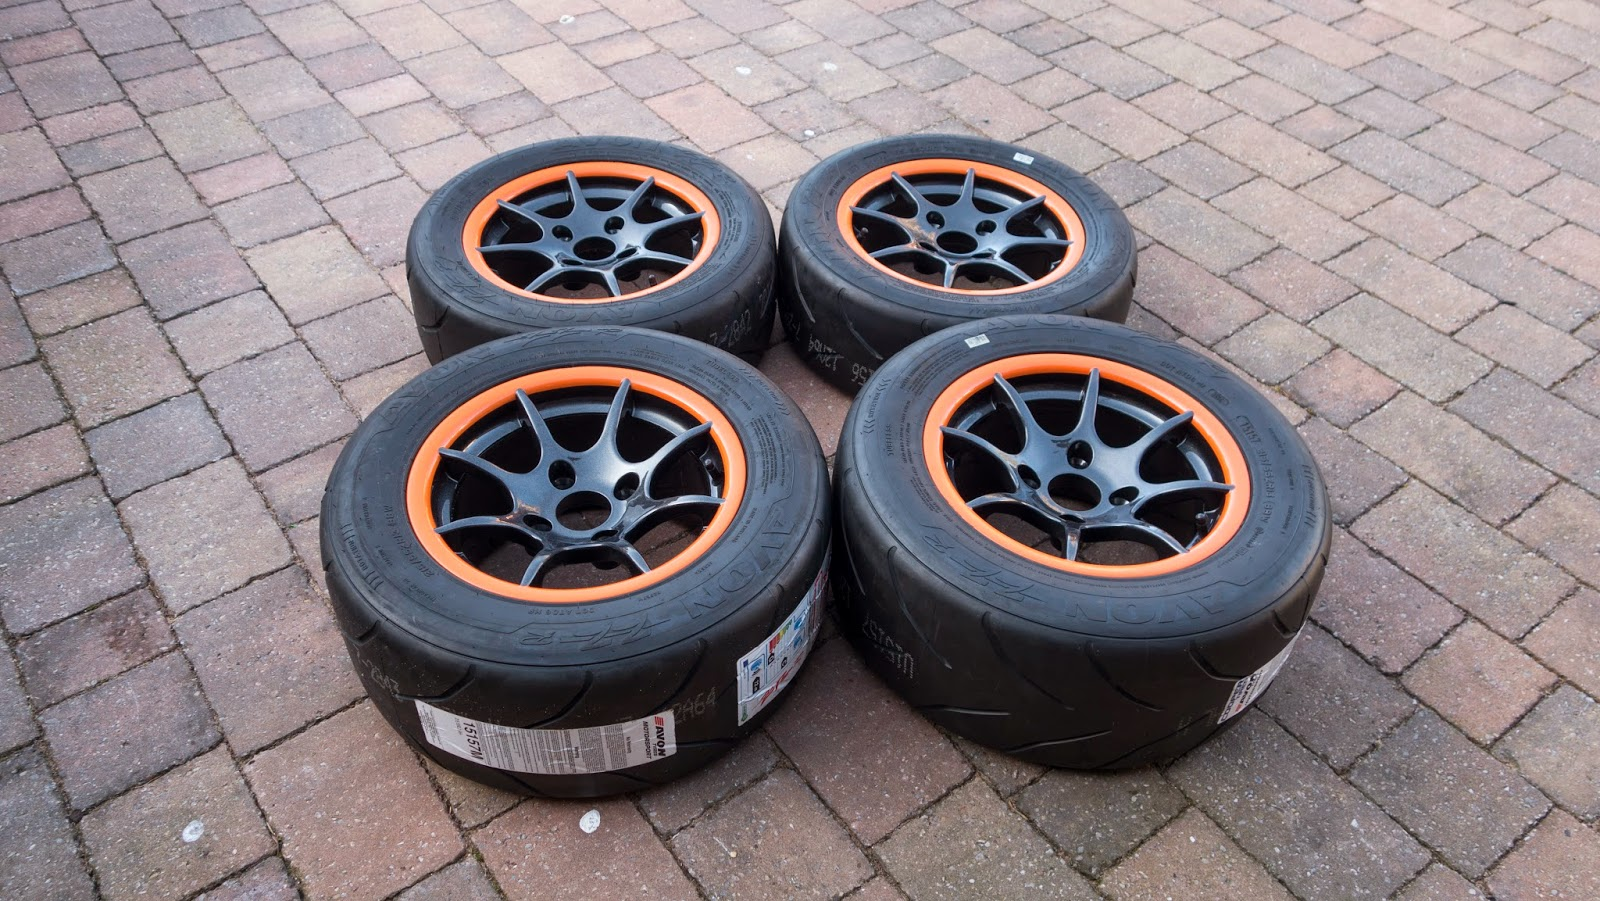 Caterham 8 spoke alloy wheels with orange rim fitted with AVON ZZR tyres